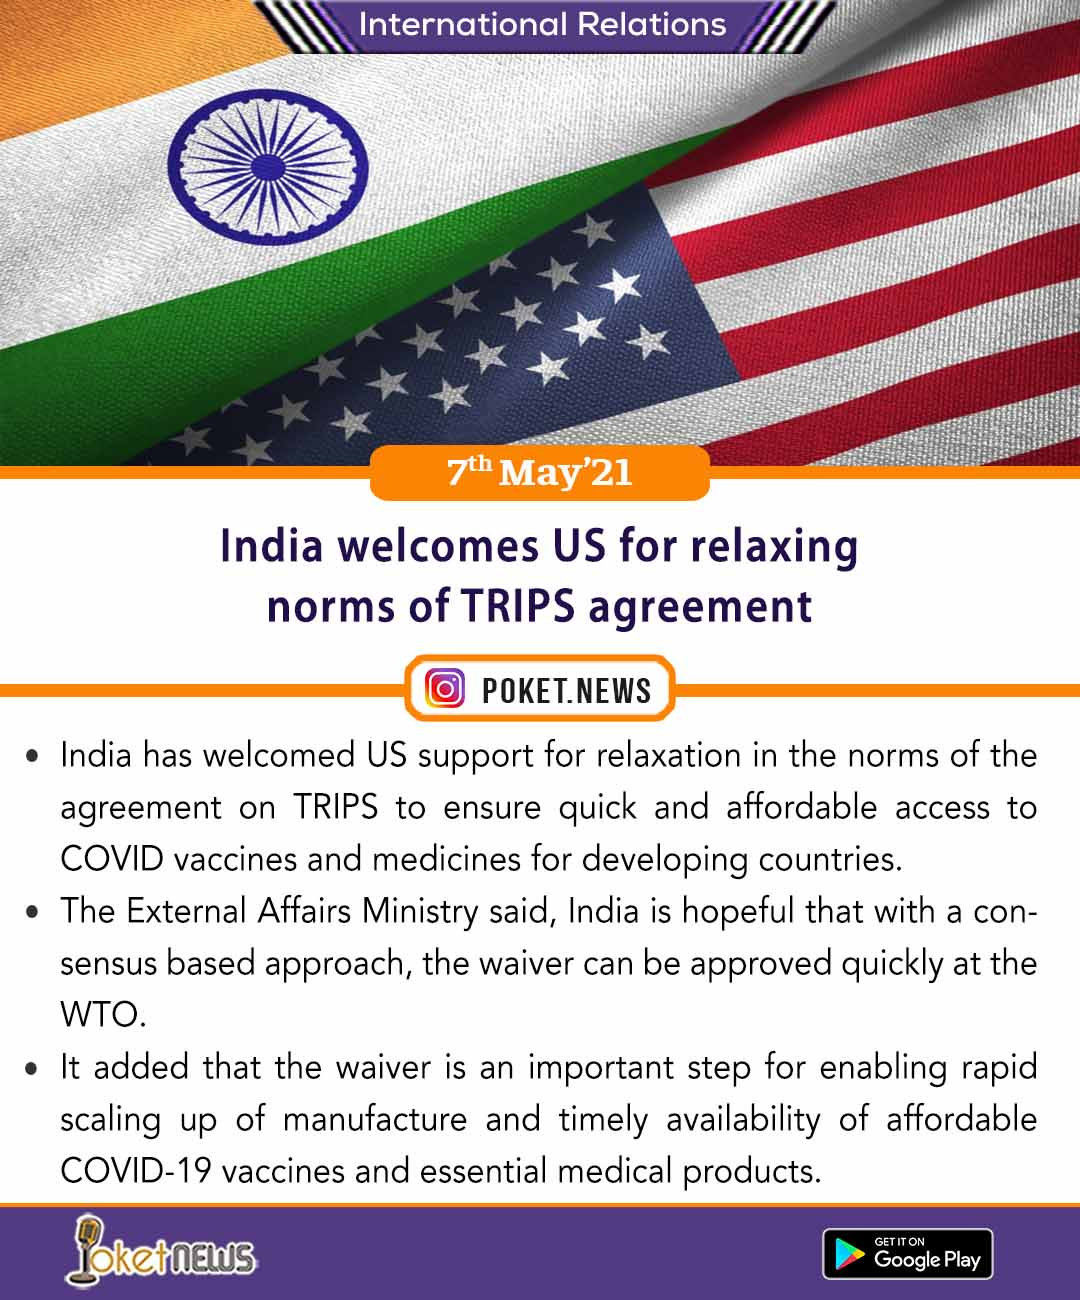 India welcomes US for relaxing norms of TRIPS agreement